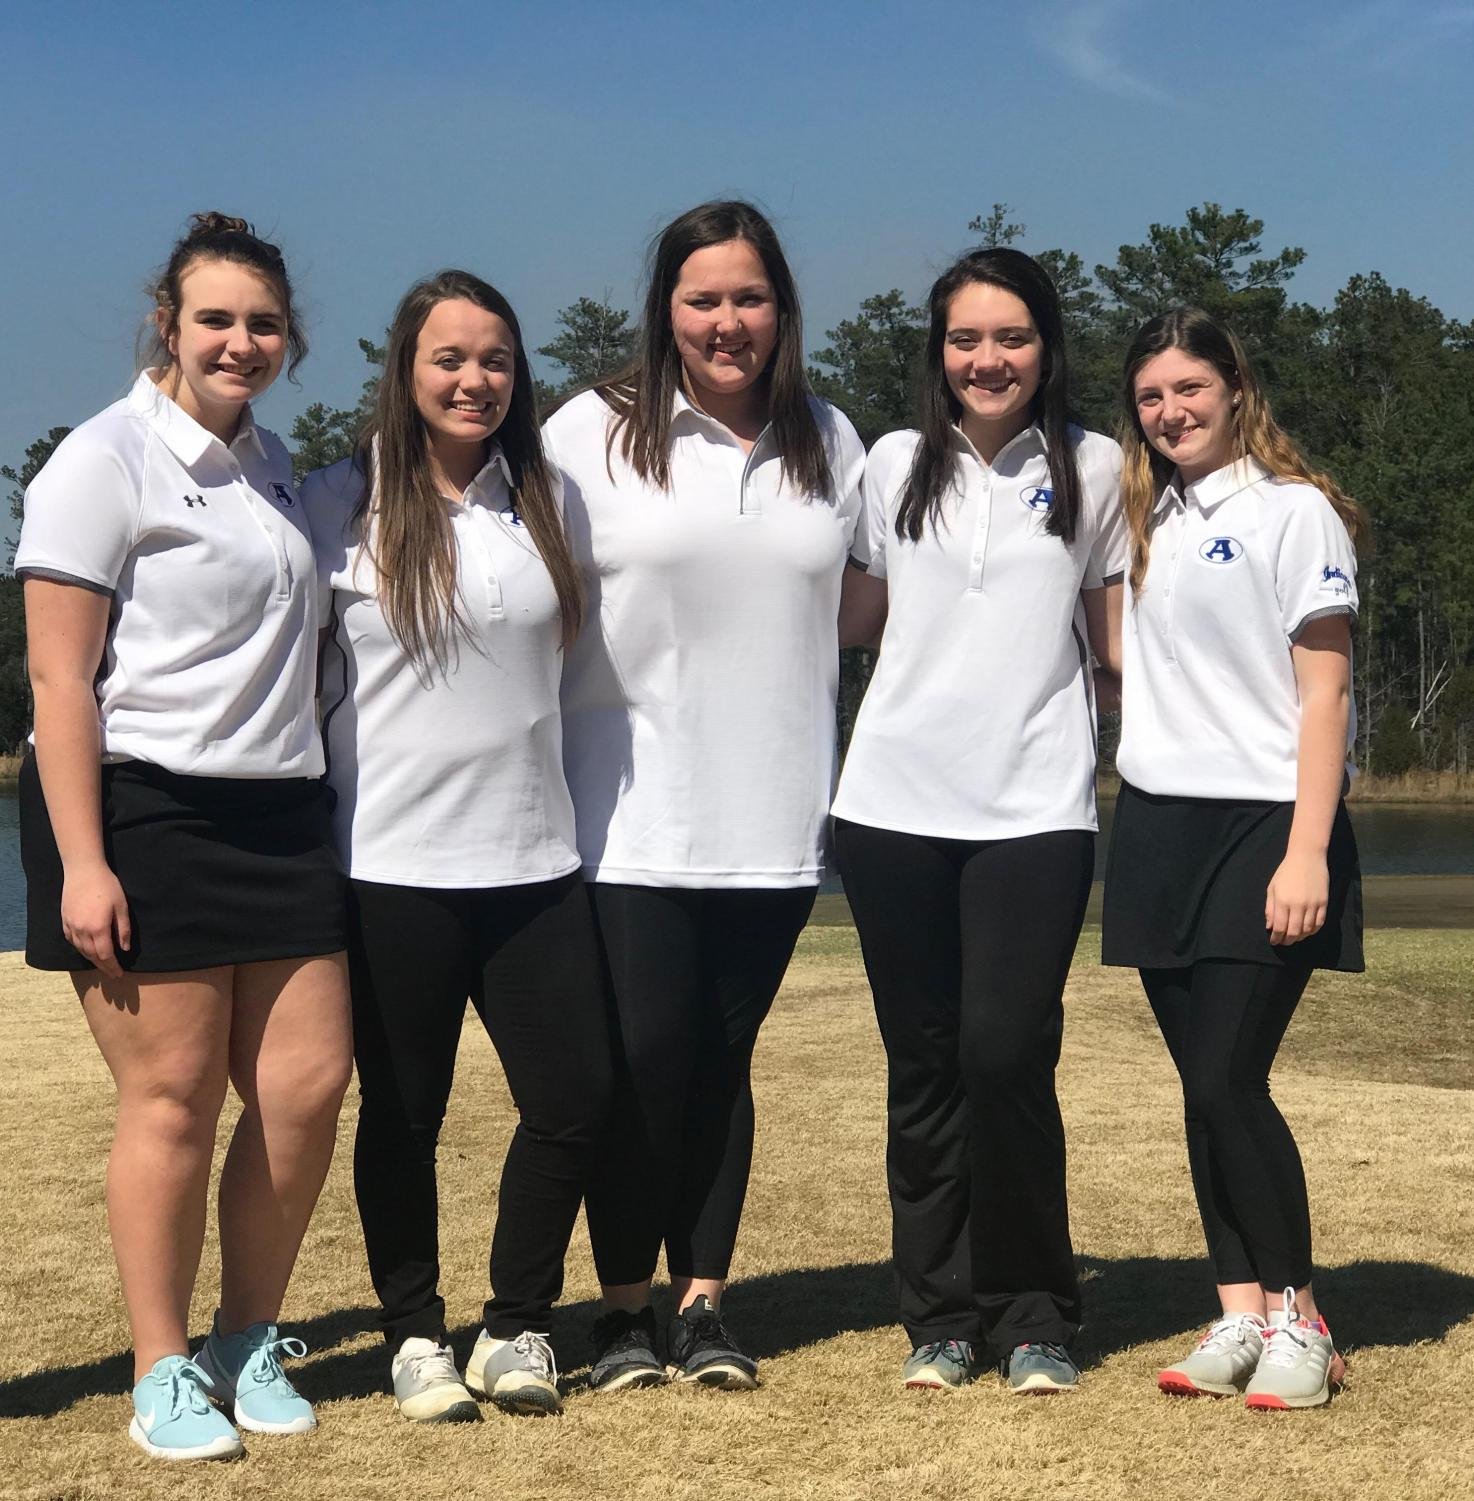 The+girls+golf+team+poses+for+a+picture+before+their+golf+match+against+Rockmart.+Left+to+right%3A+Katie+Leonard%2C+freshman%2C+Gracie+Williams%2C+Audrey+Young%2C+Allison+Jackson%2C+juniors%2C+and+Logan+Lively%2C+sophomore.+